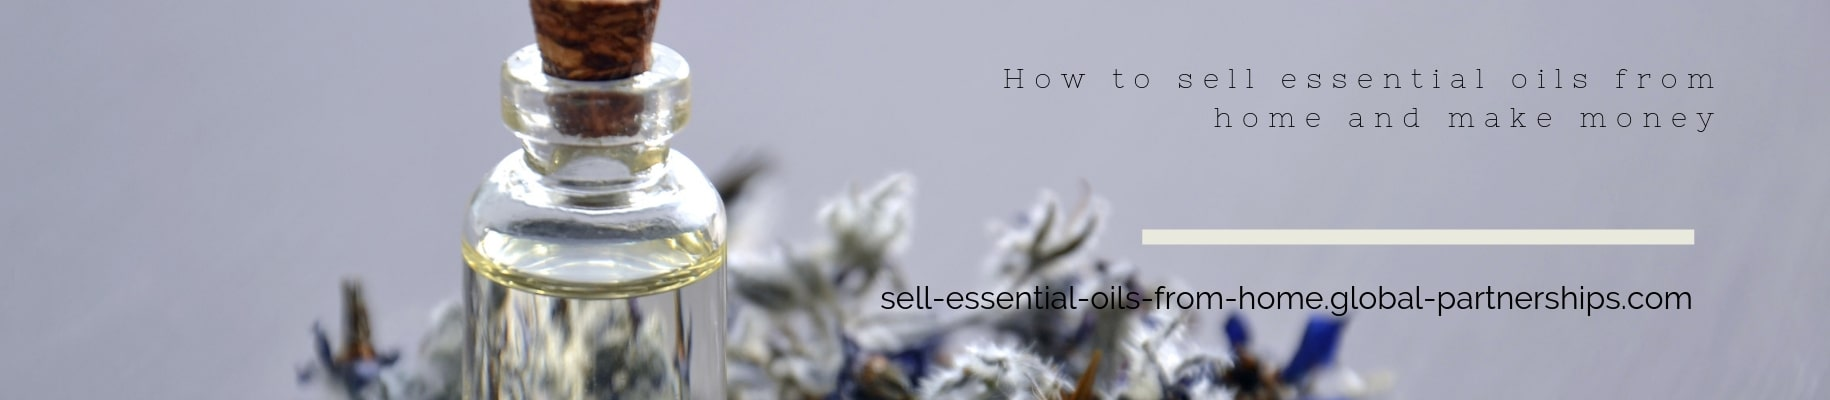 How to sell essential oils from home and make money